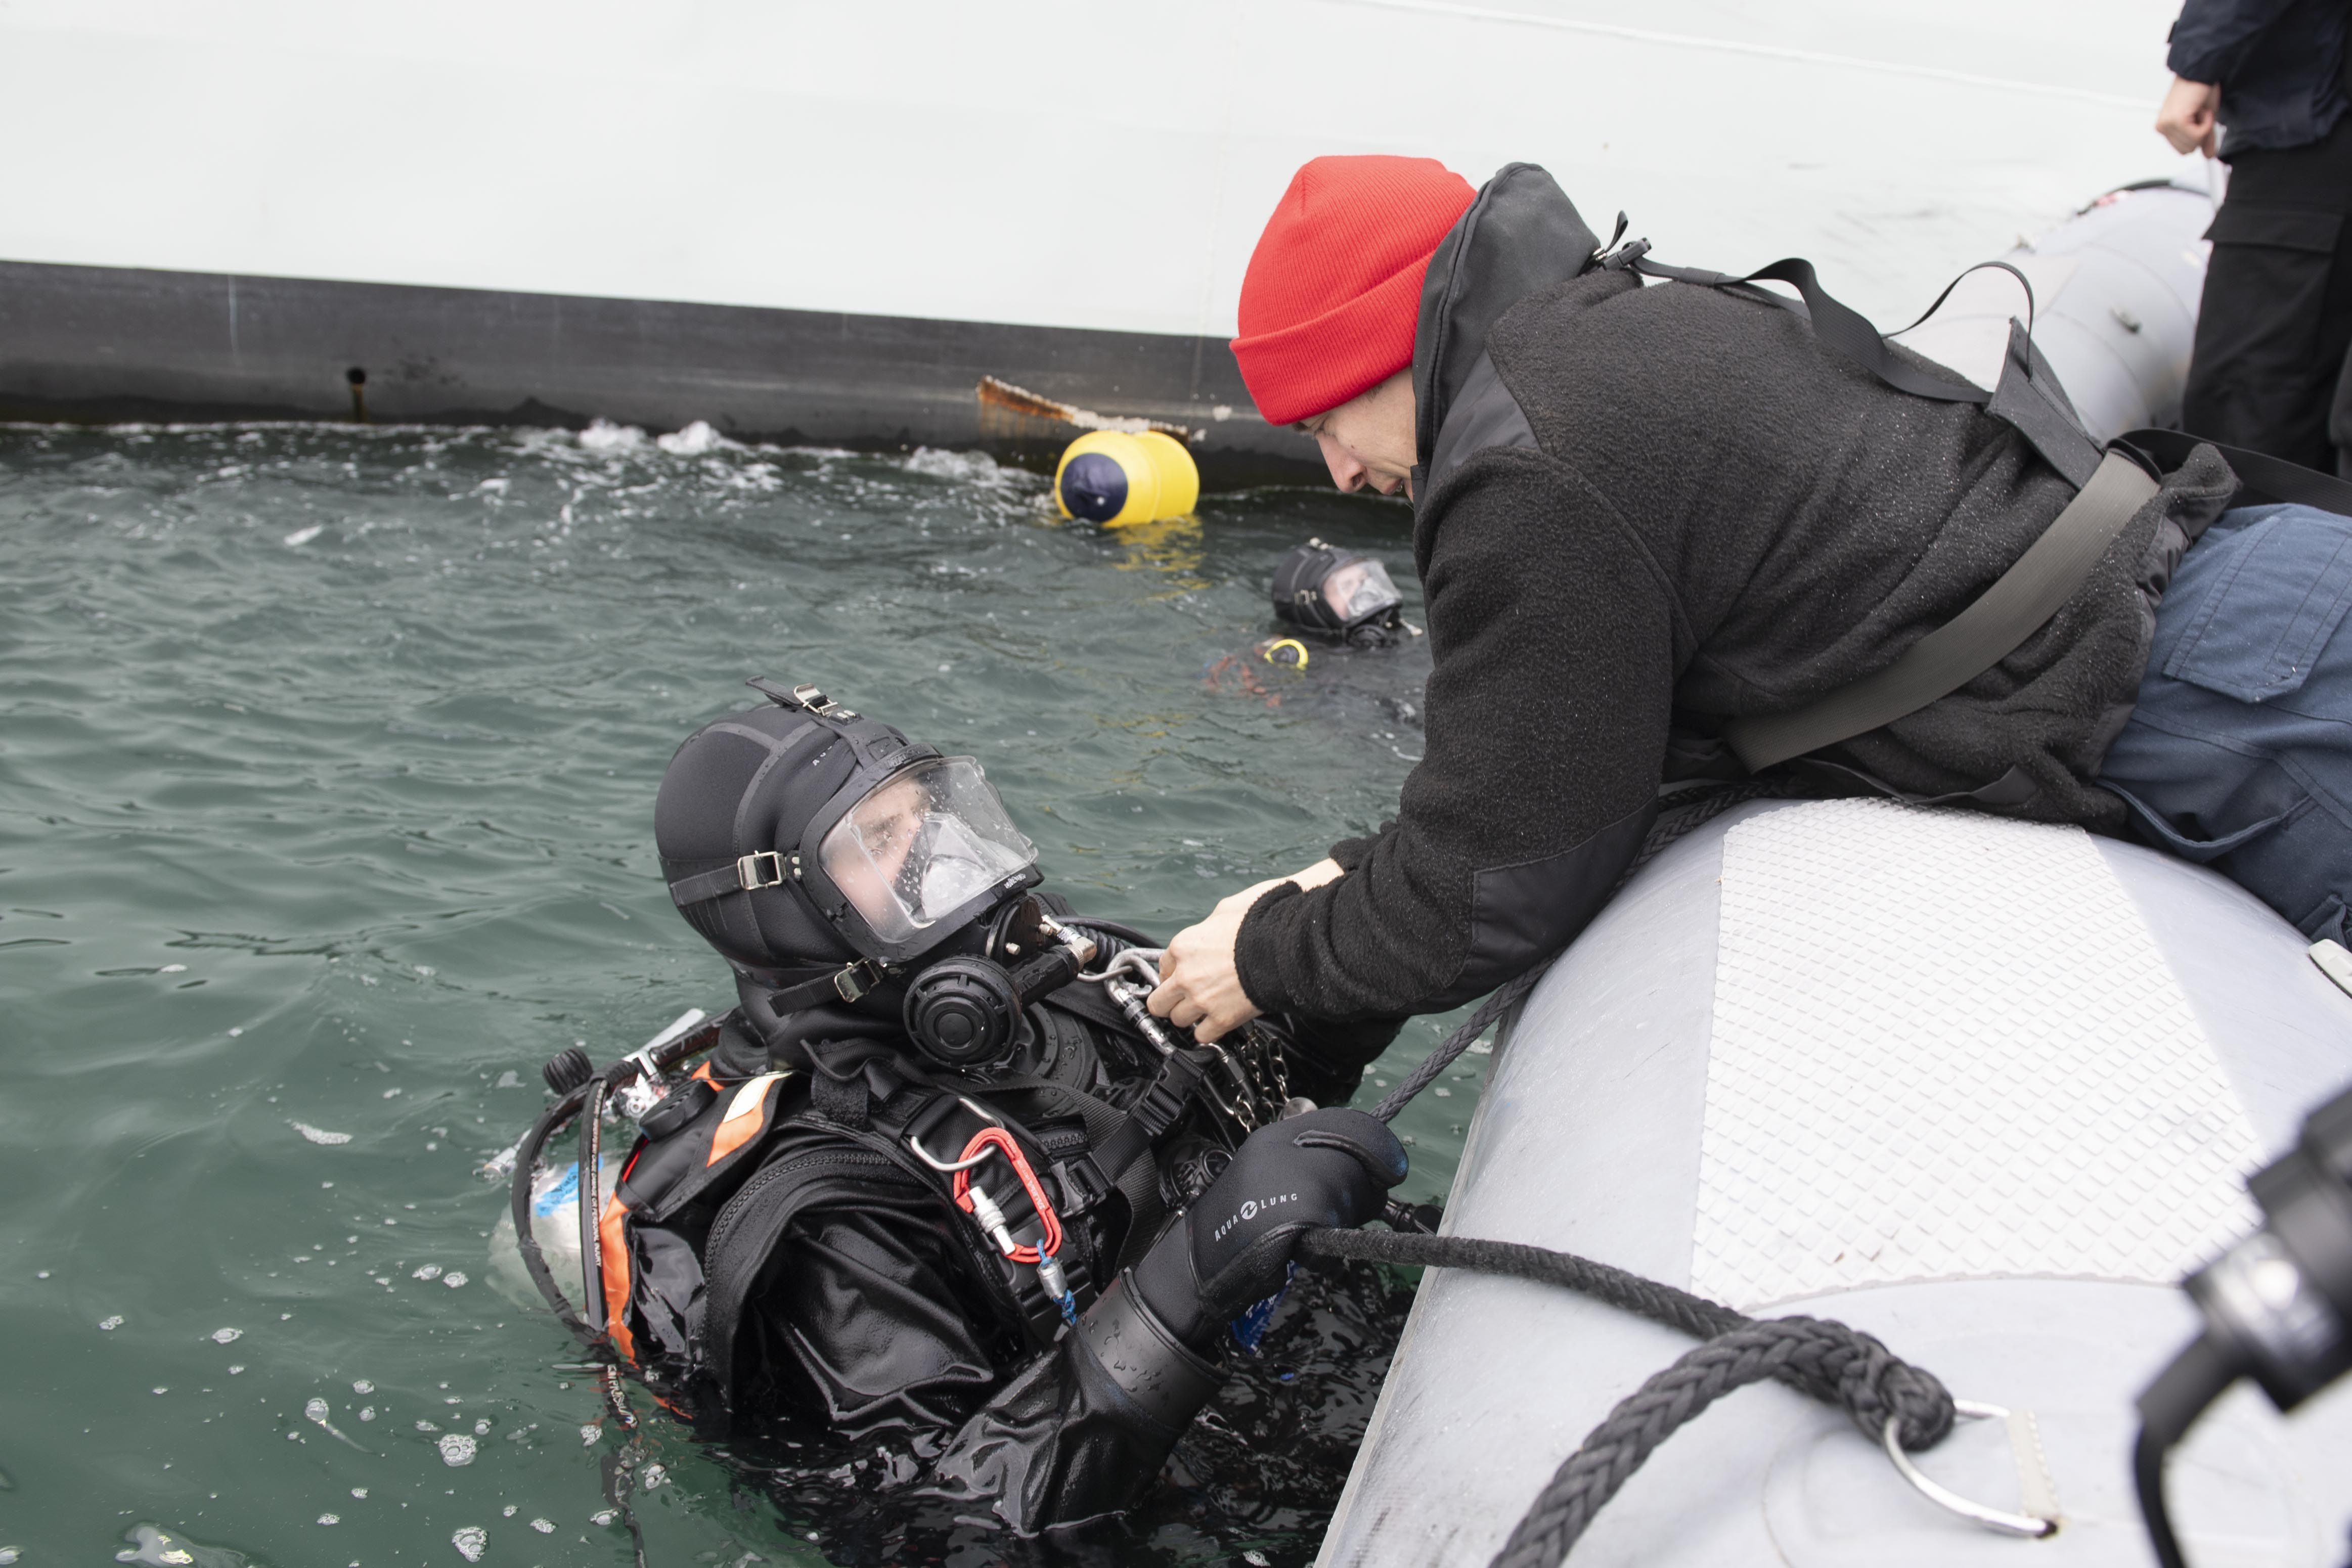 Leading Seaman (LS) Cory Taylor (right) helps LS John Kester to remove his gear at the conclusion of a diving operation at the Port of Reykjavik, Iceland